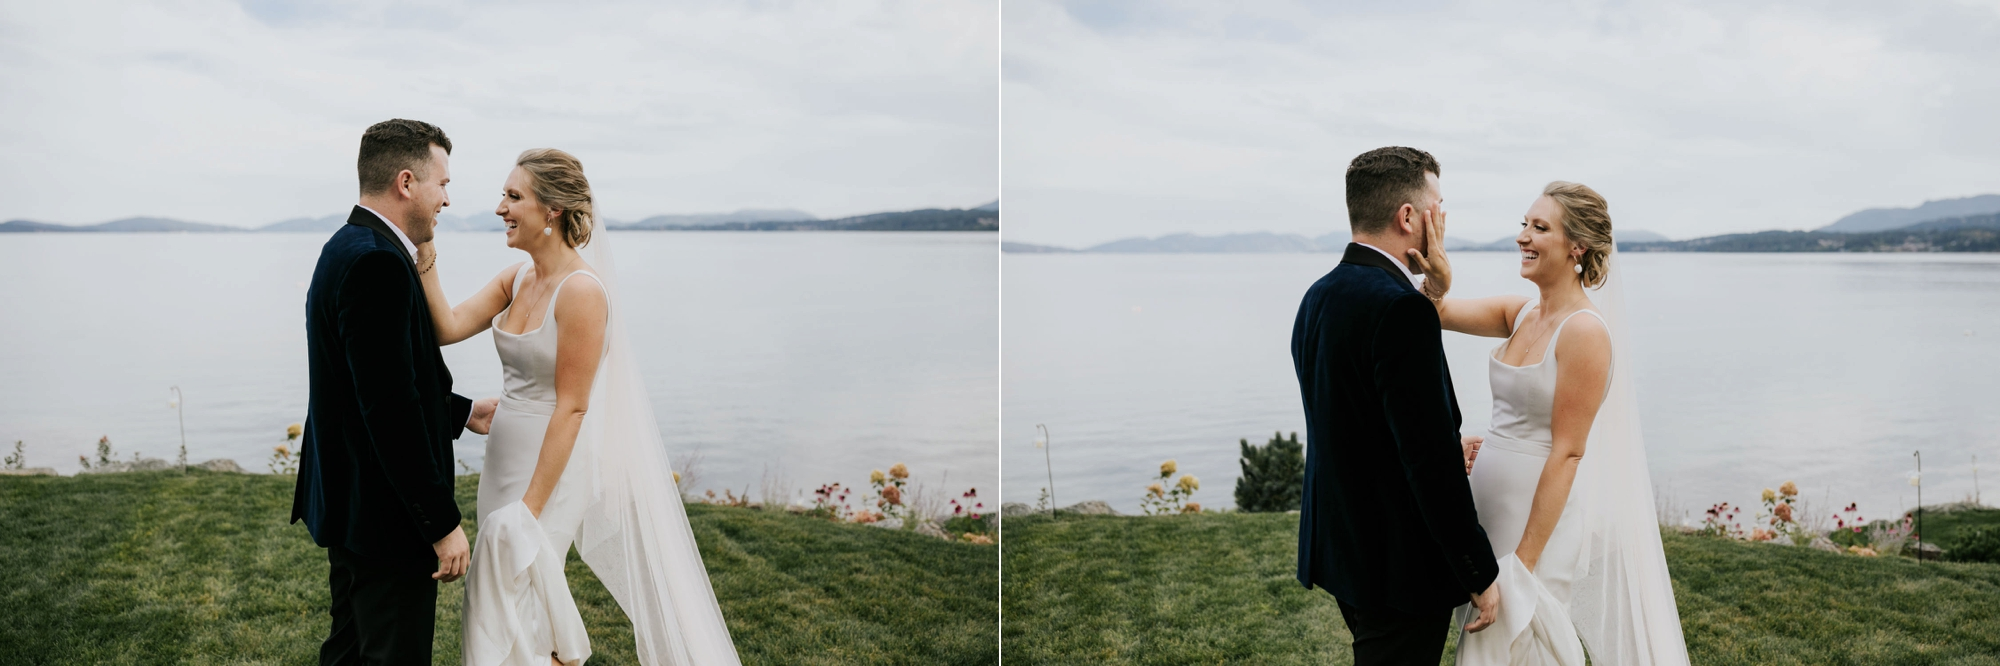 Candid emotional moment of bride wiping away groom's tears after wedding ceremony at the sea in Victoria on Vancouver Island